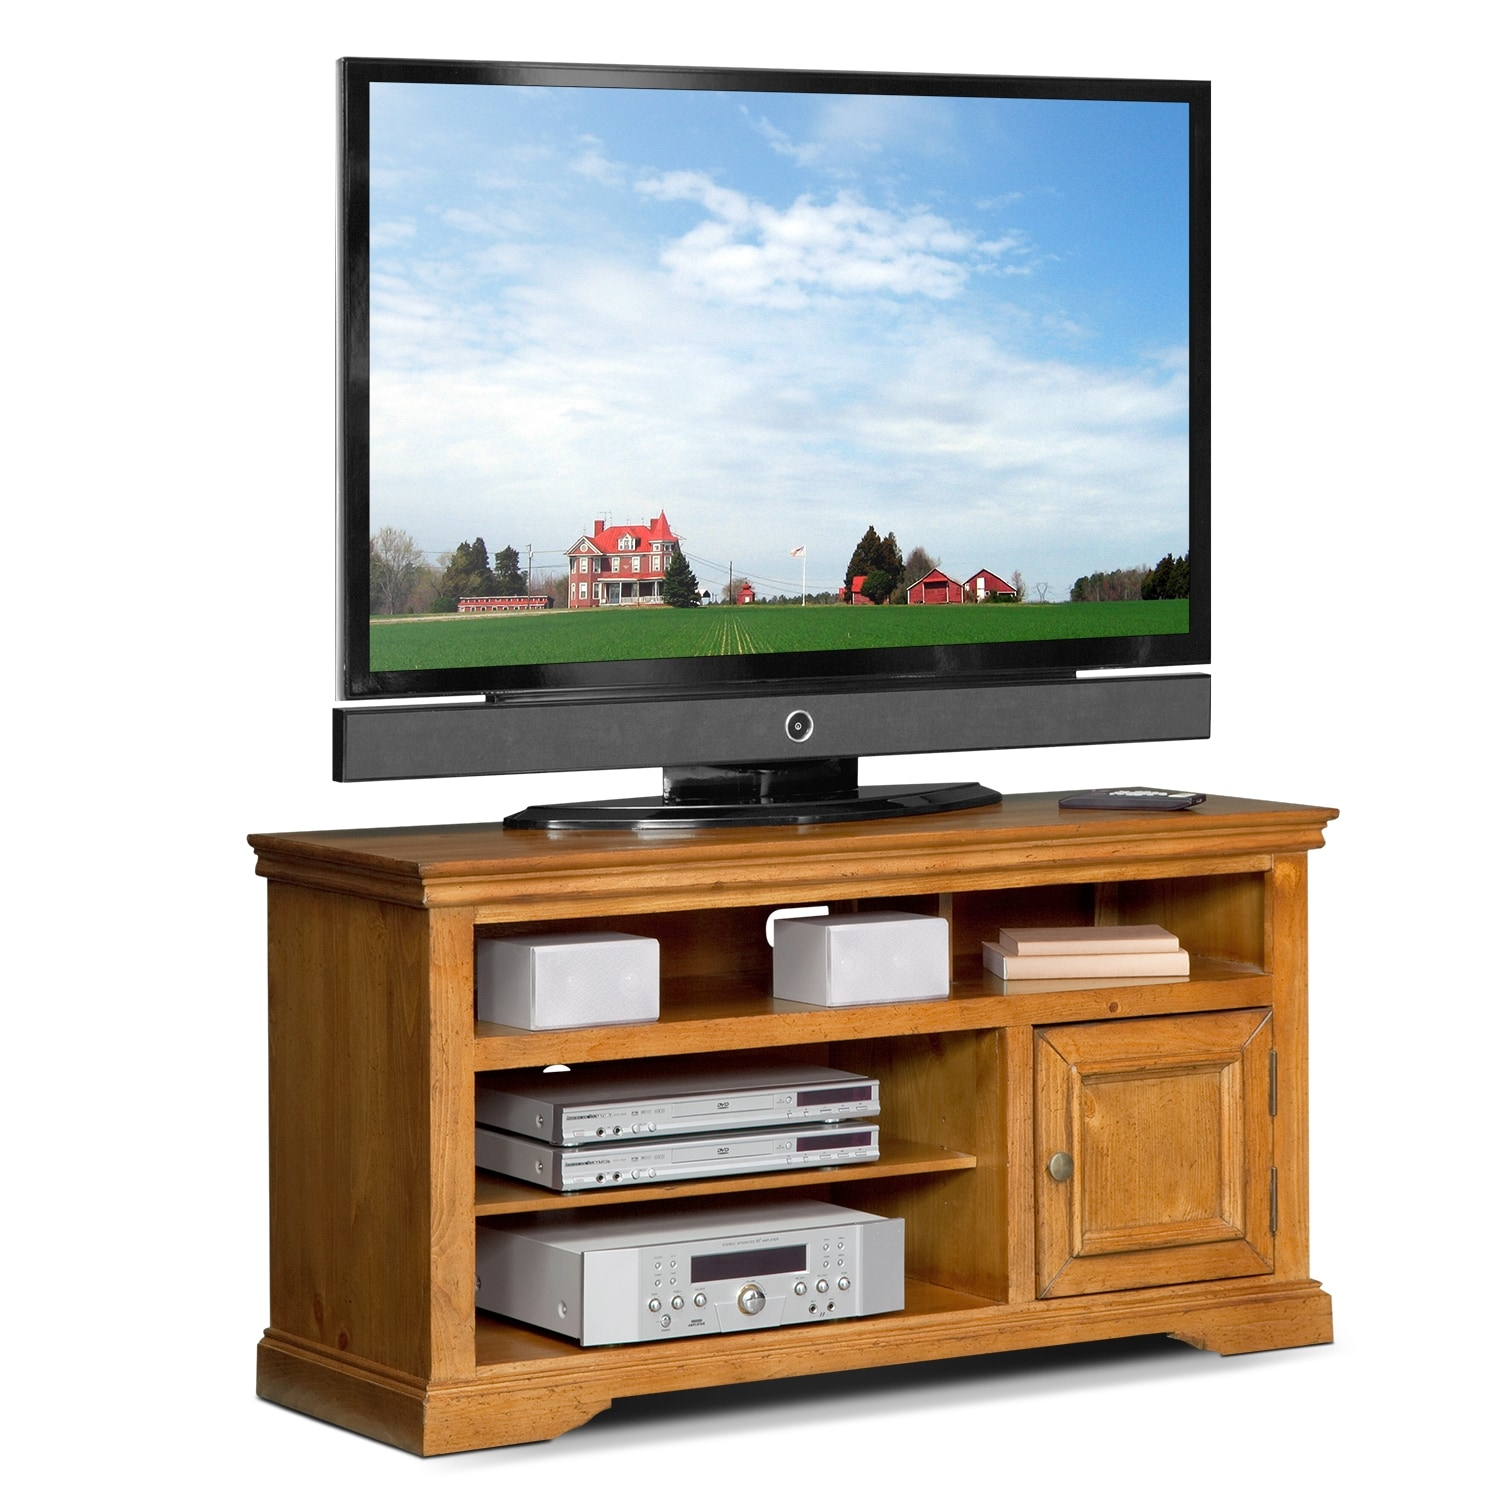 Jenson iii quot tv stand american signature furniture